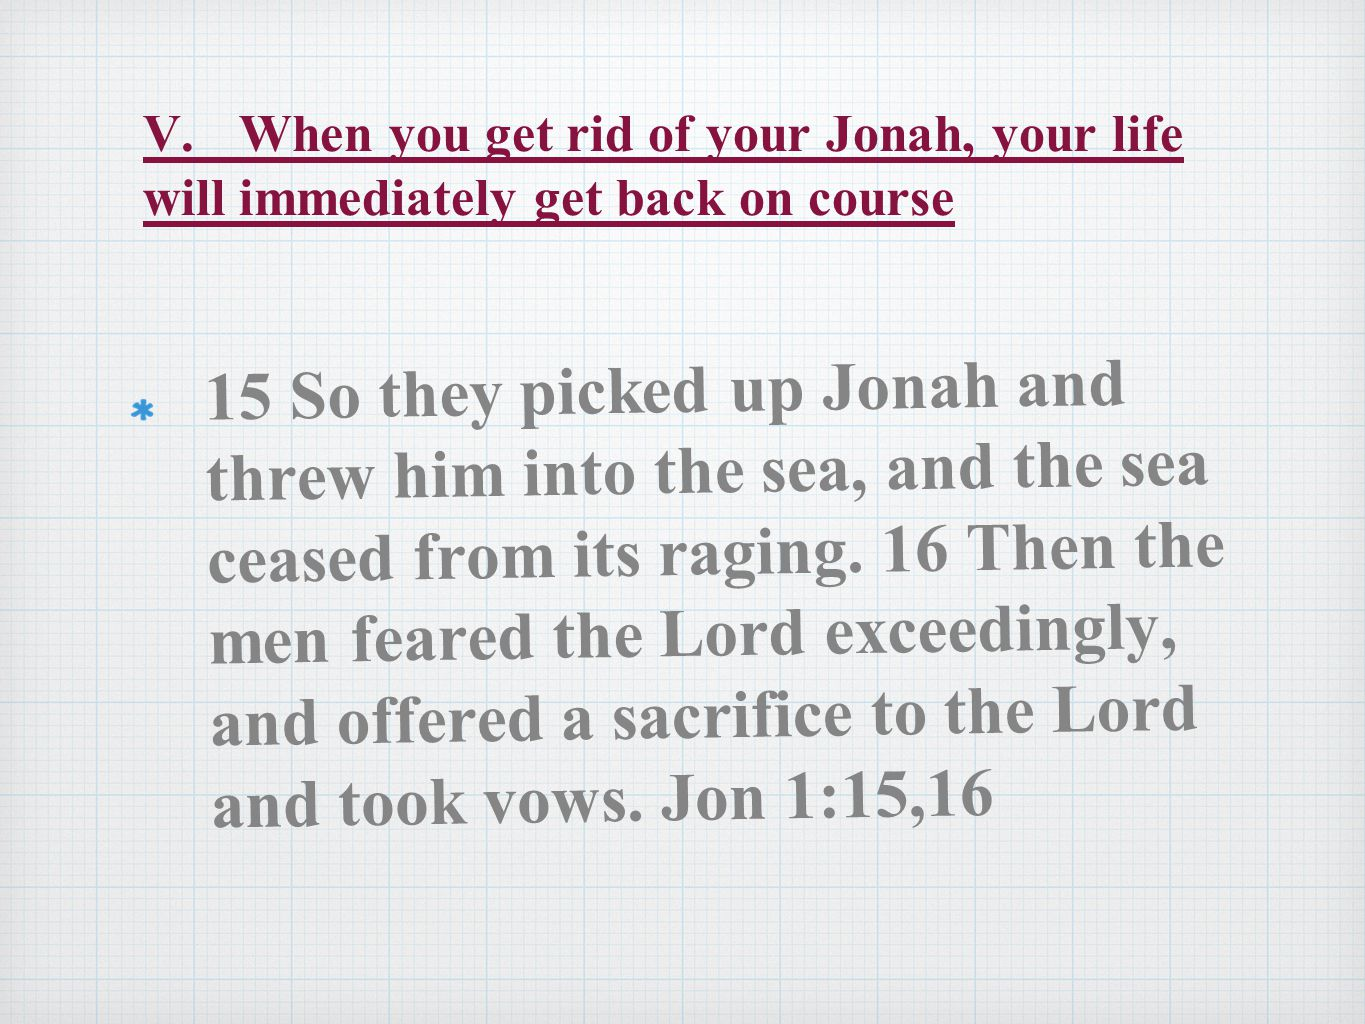 V. When you get rid of your Jonah, your life will immediately get back on course